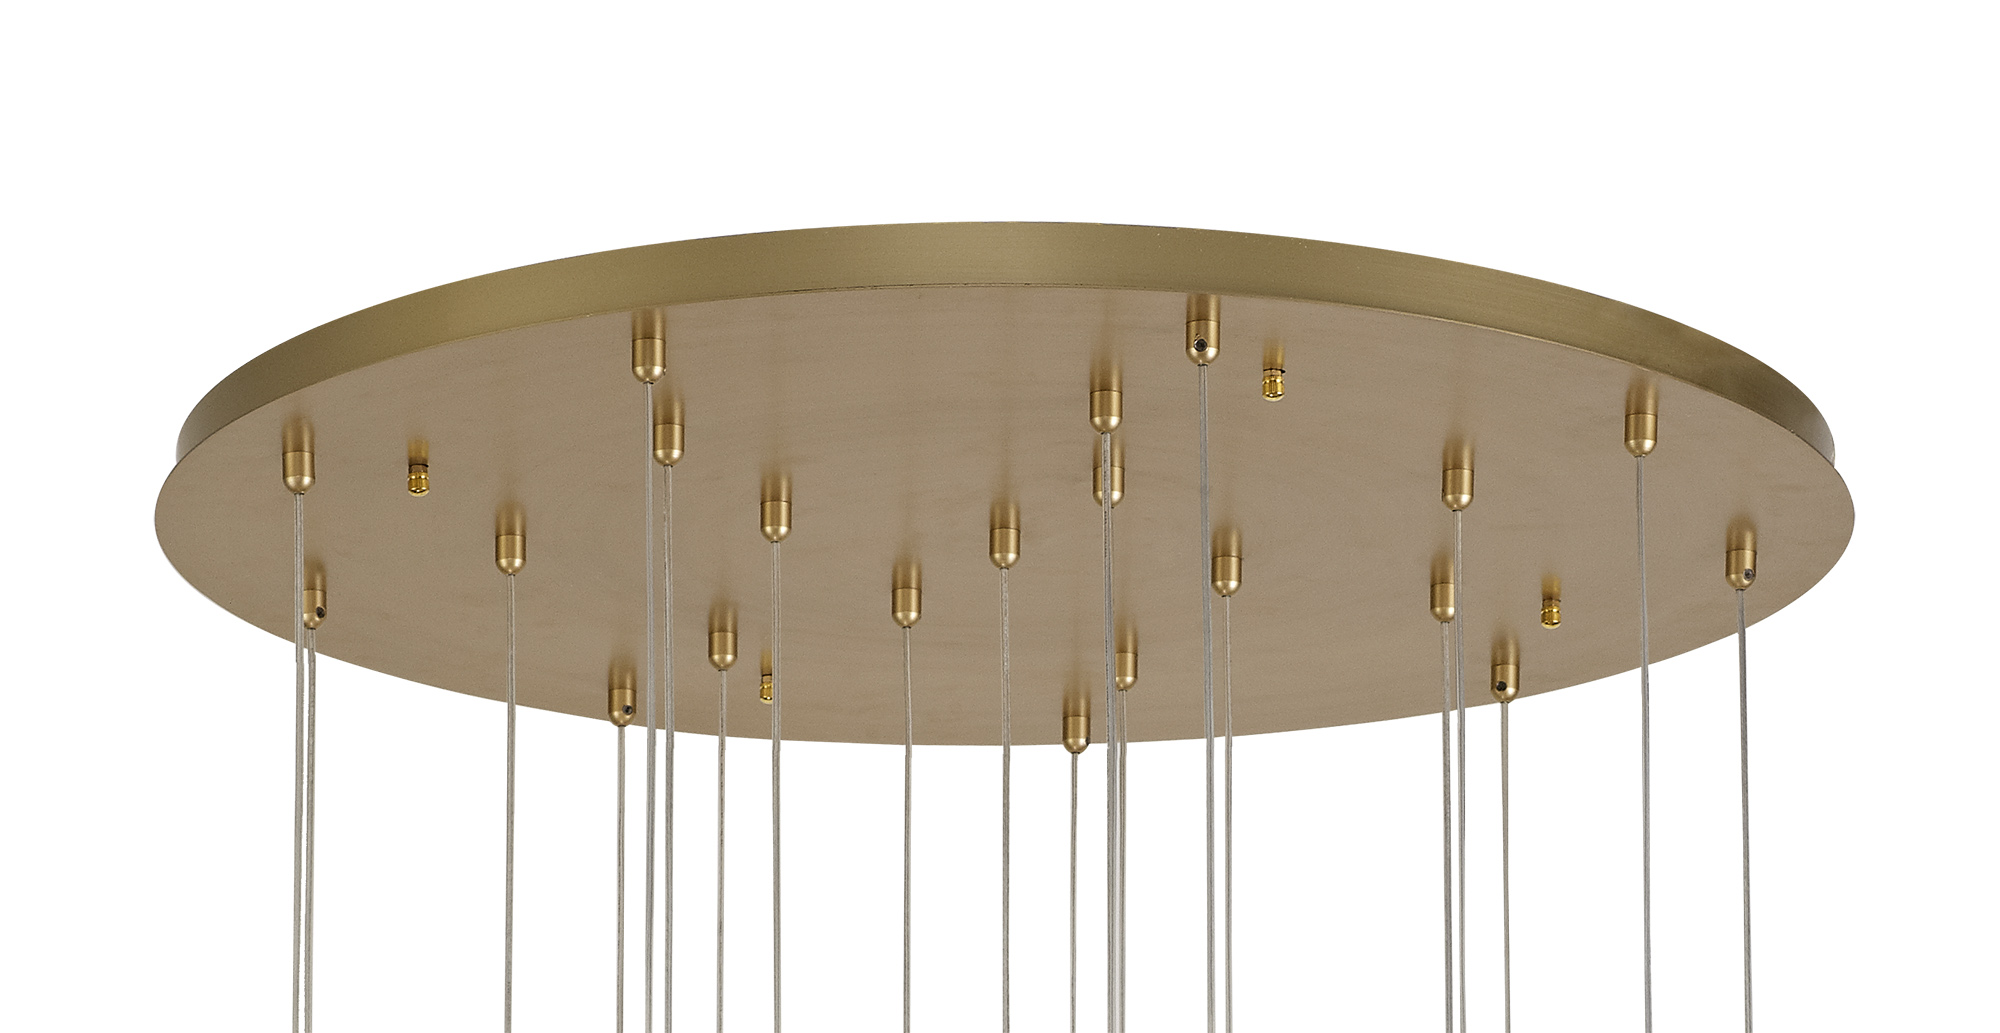 Pendant Round 5M, 21 x 4.5W LED, 3000K, 3360lm, Painted Brushed Gold, 3yrs Warranty